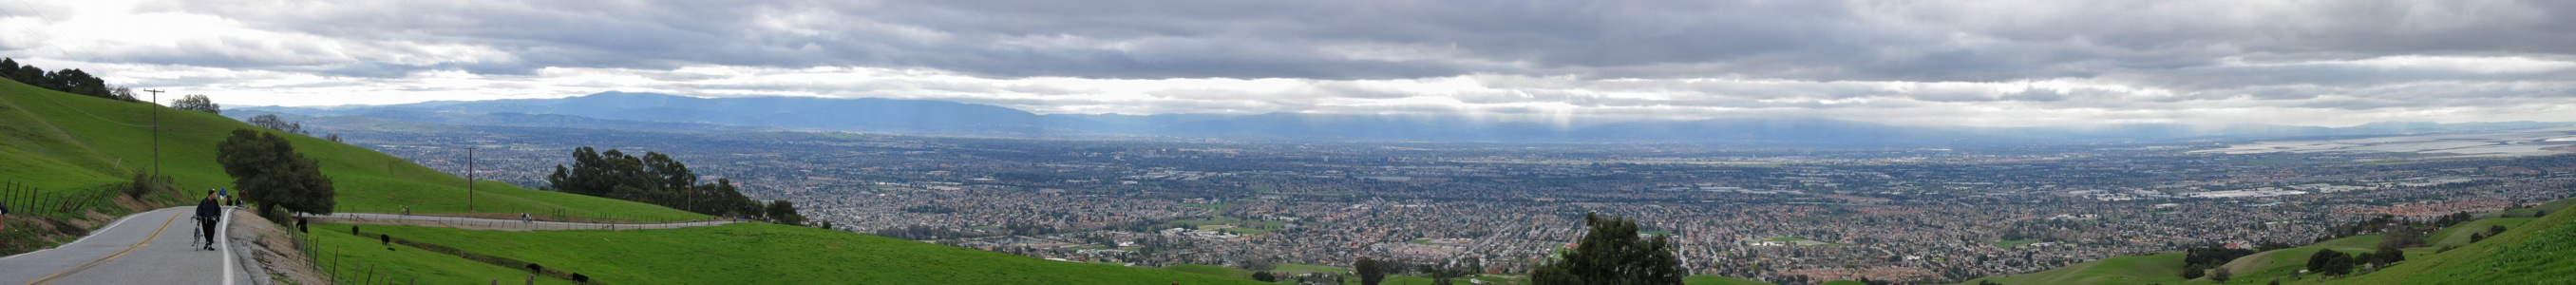 San Jose from Sierra Road - 10/2006